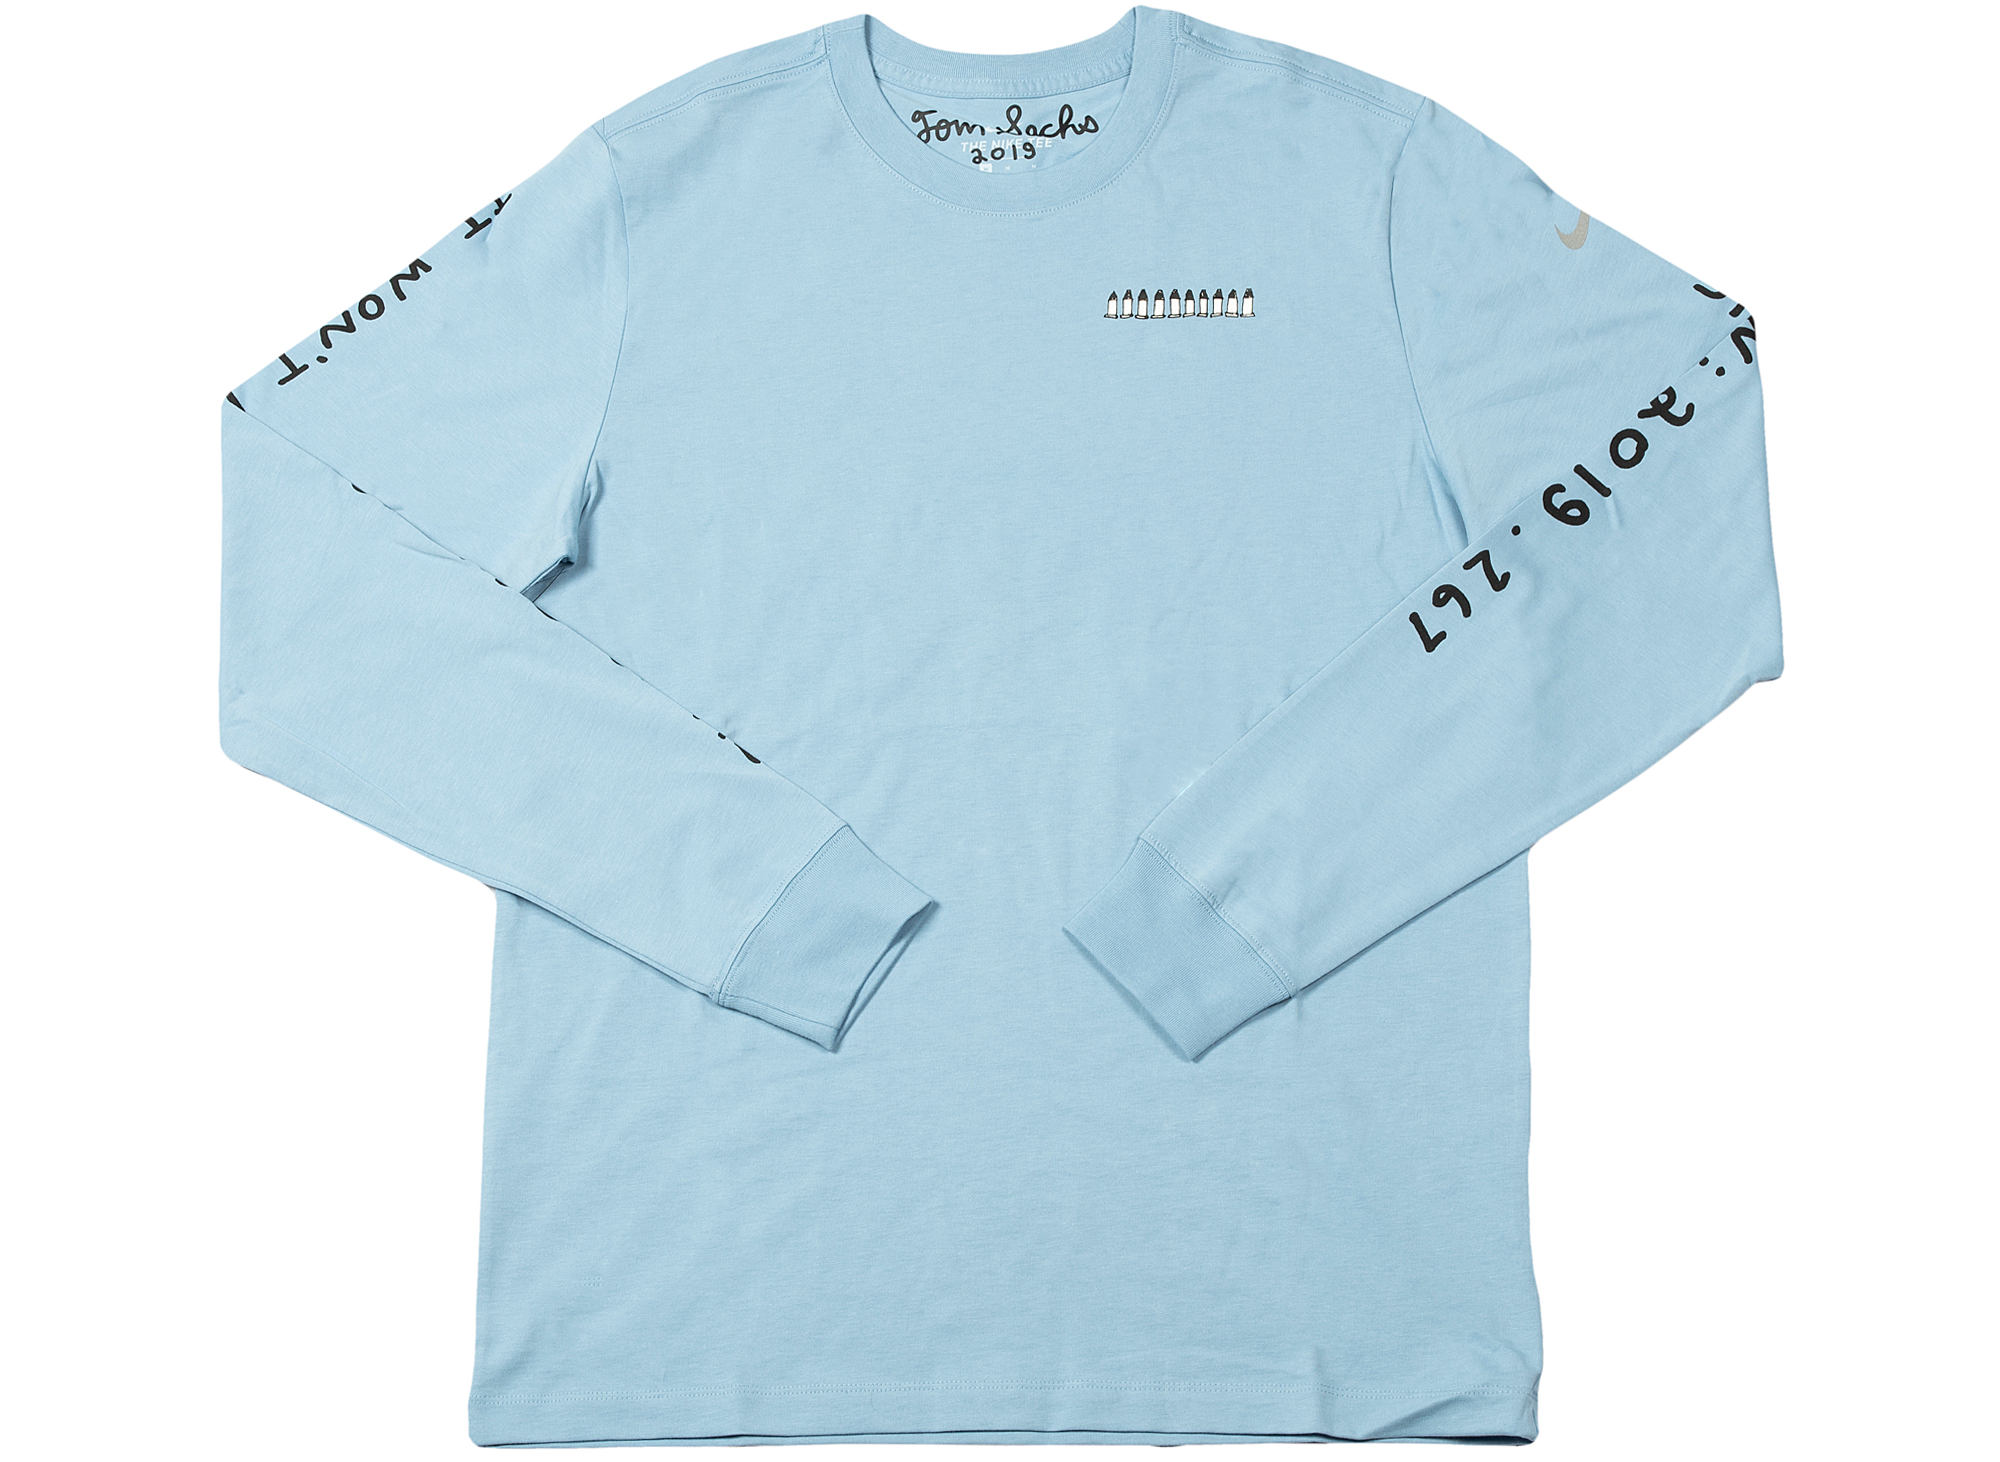 Nike x Tom Sachs Long Sleeve Tee